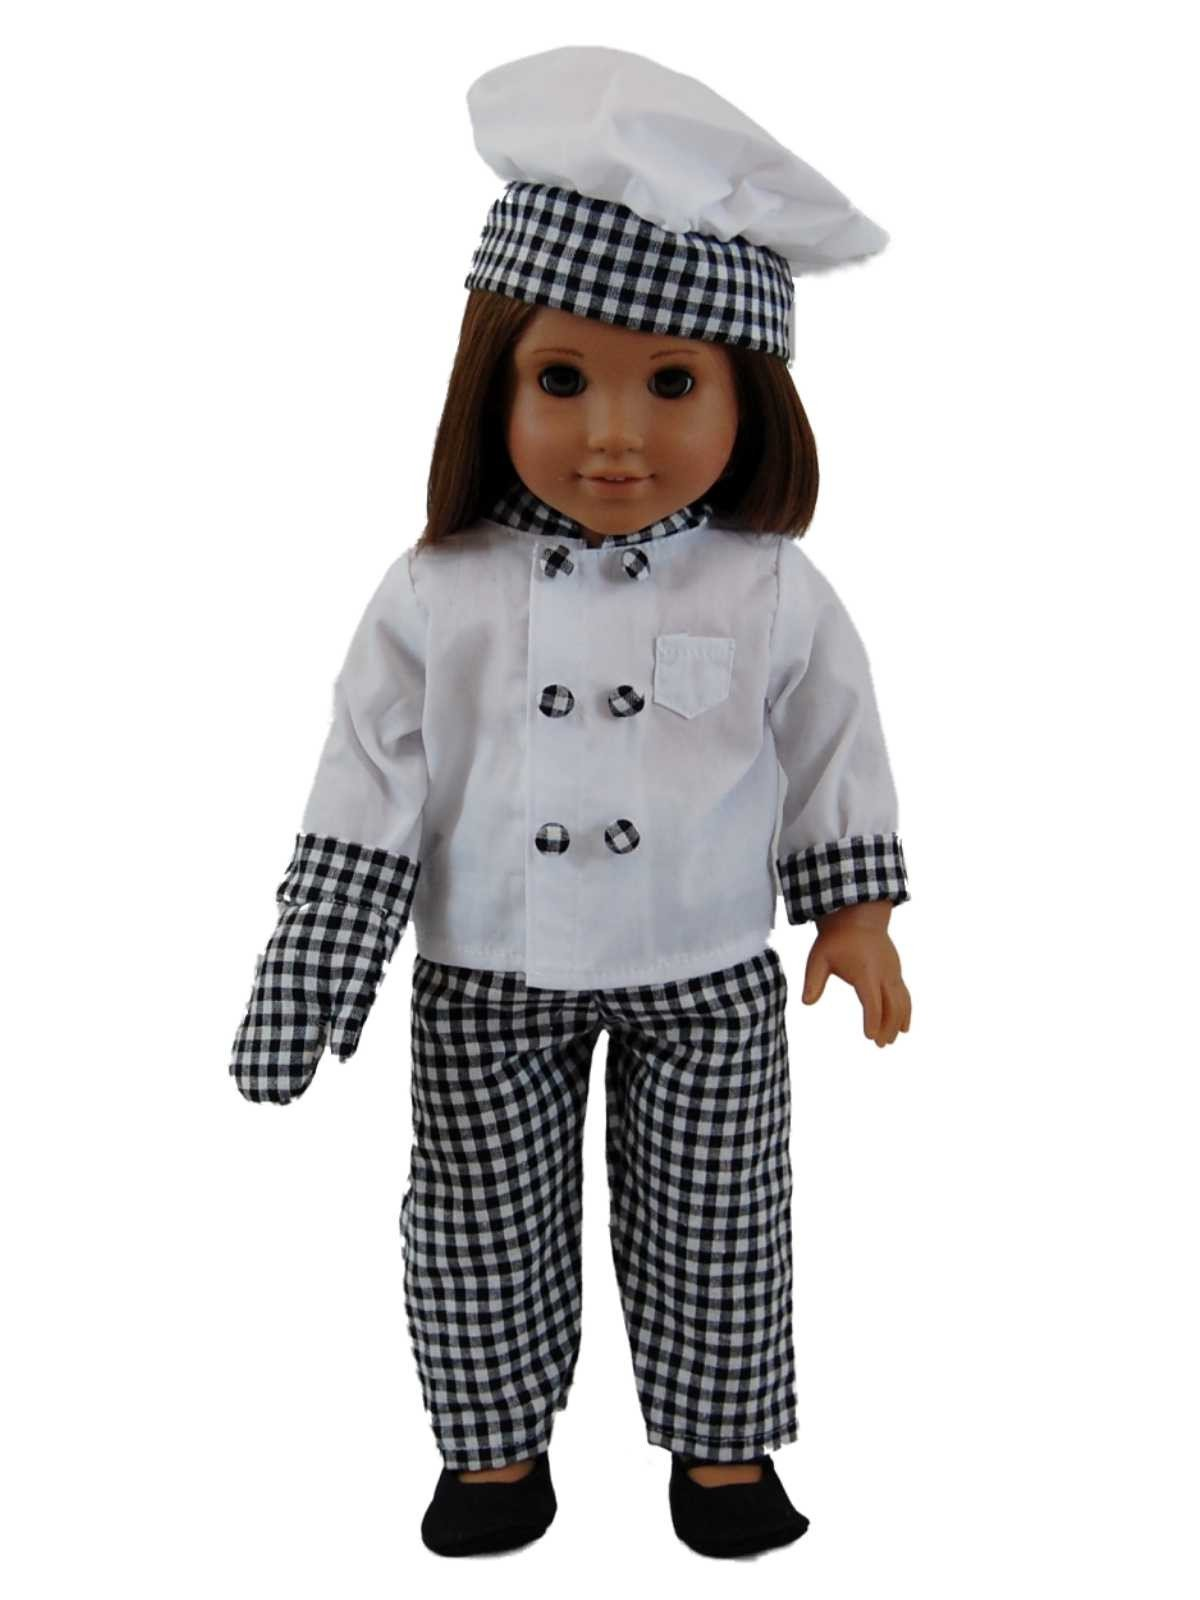 Chef Outfit & 11 Piece Kitchen Tool Set Fits American Girl¨ Dolls